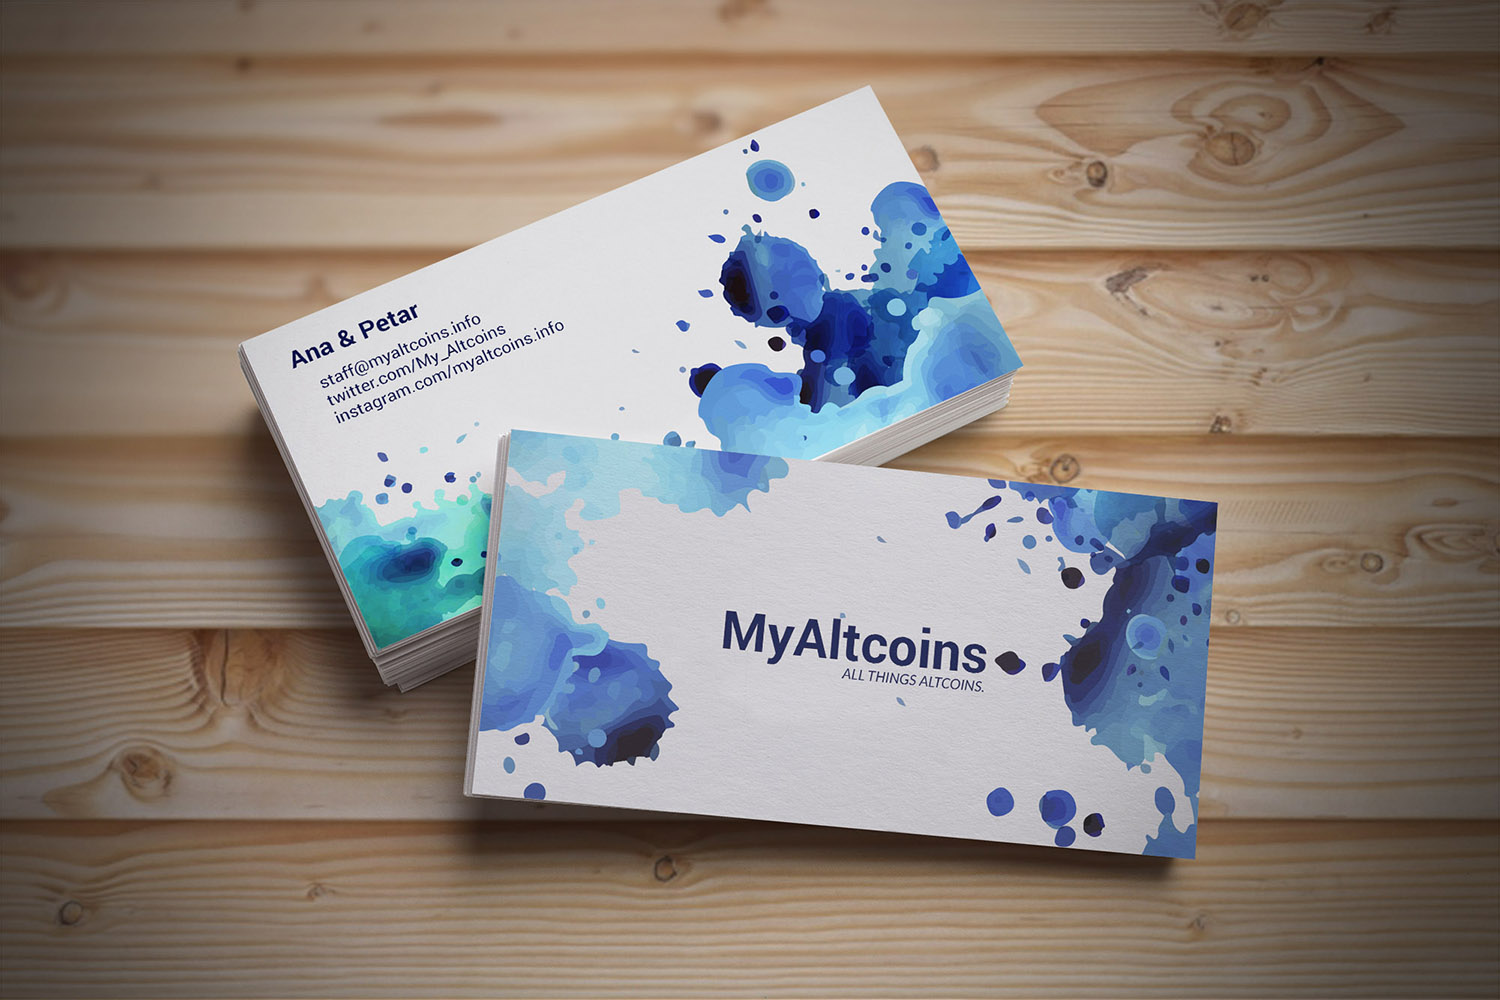 MyAltcoins business card on a wooden background